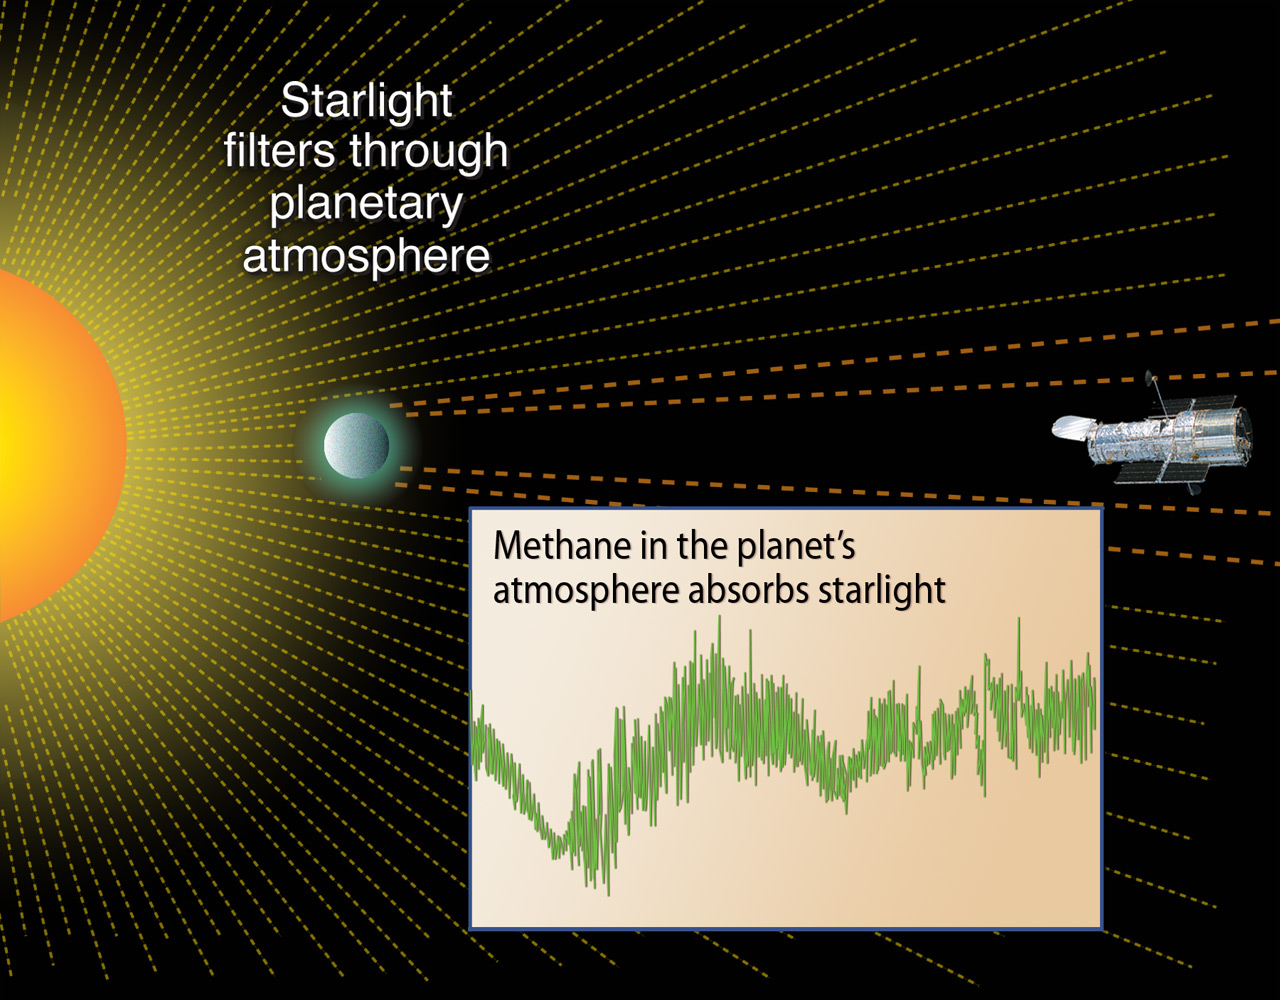 Astronomers can study the starlight that filters through exoplanet atmospheres, searching for signatures of molecules that may be signs of life. - See more at: http://www.space.com/31519-alien-life-hunt-biosignatures-exoplanet-atmospheres.html#sthash.DvLf1Exl.dpuf